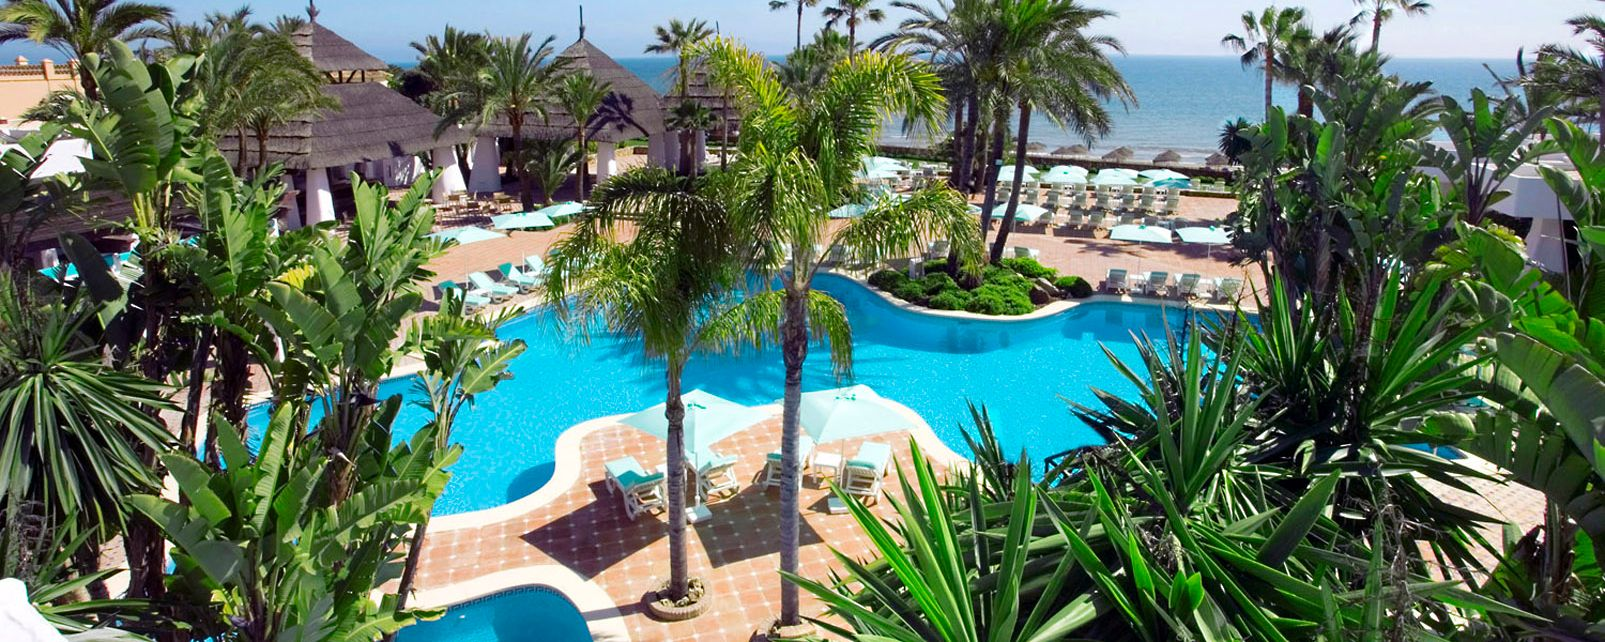 Hotel Don Carlos Leisure Resort & Spa